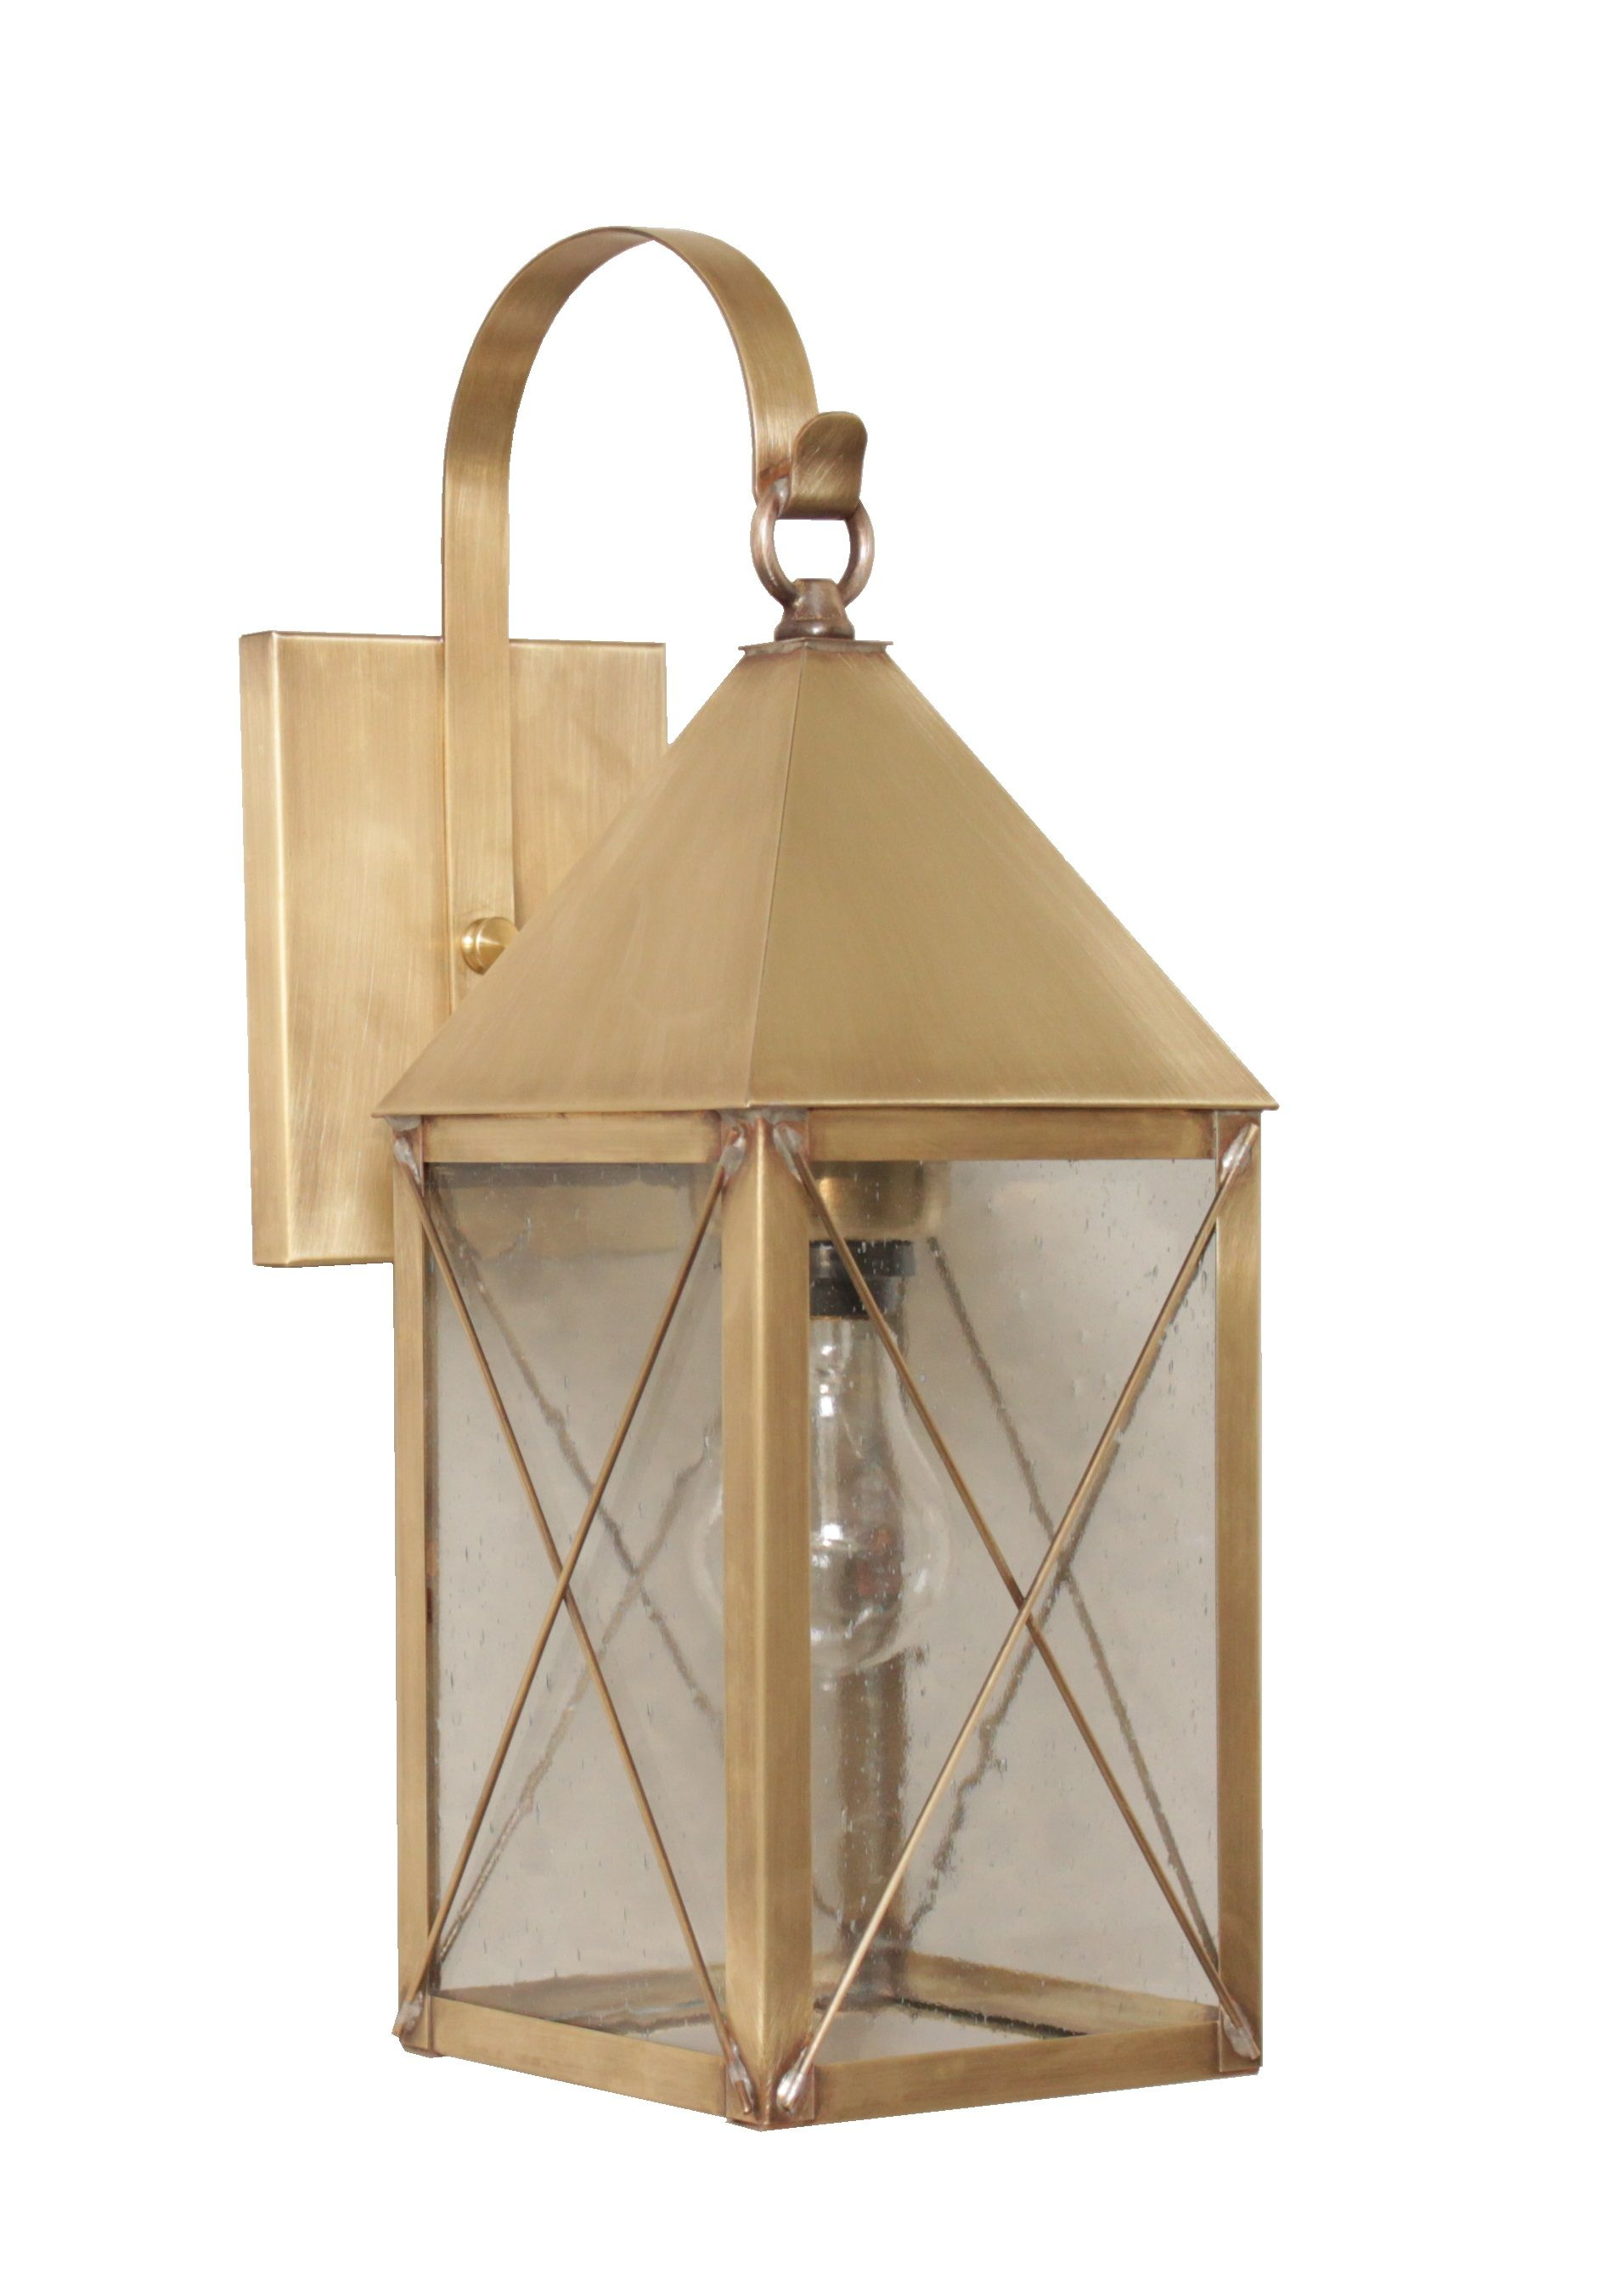 Brass Traditions 521 P Wall Lantern In Antique Brass Brasstraditions Ctmade Handcrafted Heirloomquality S Porch Lighting Farmhouse Lighting Wall Lantern